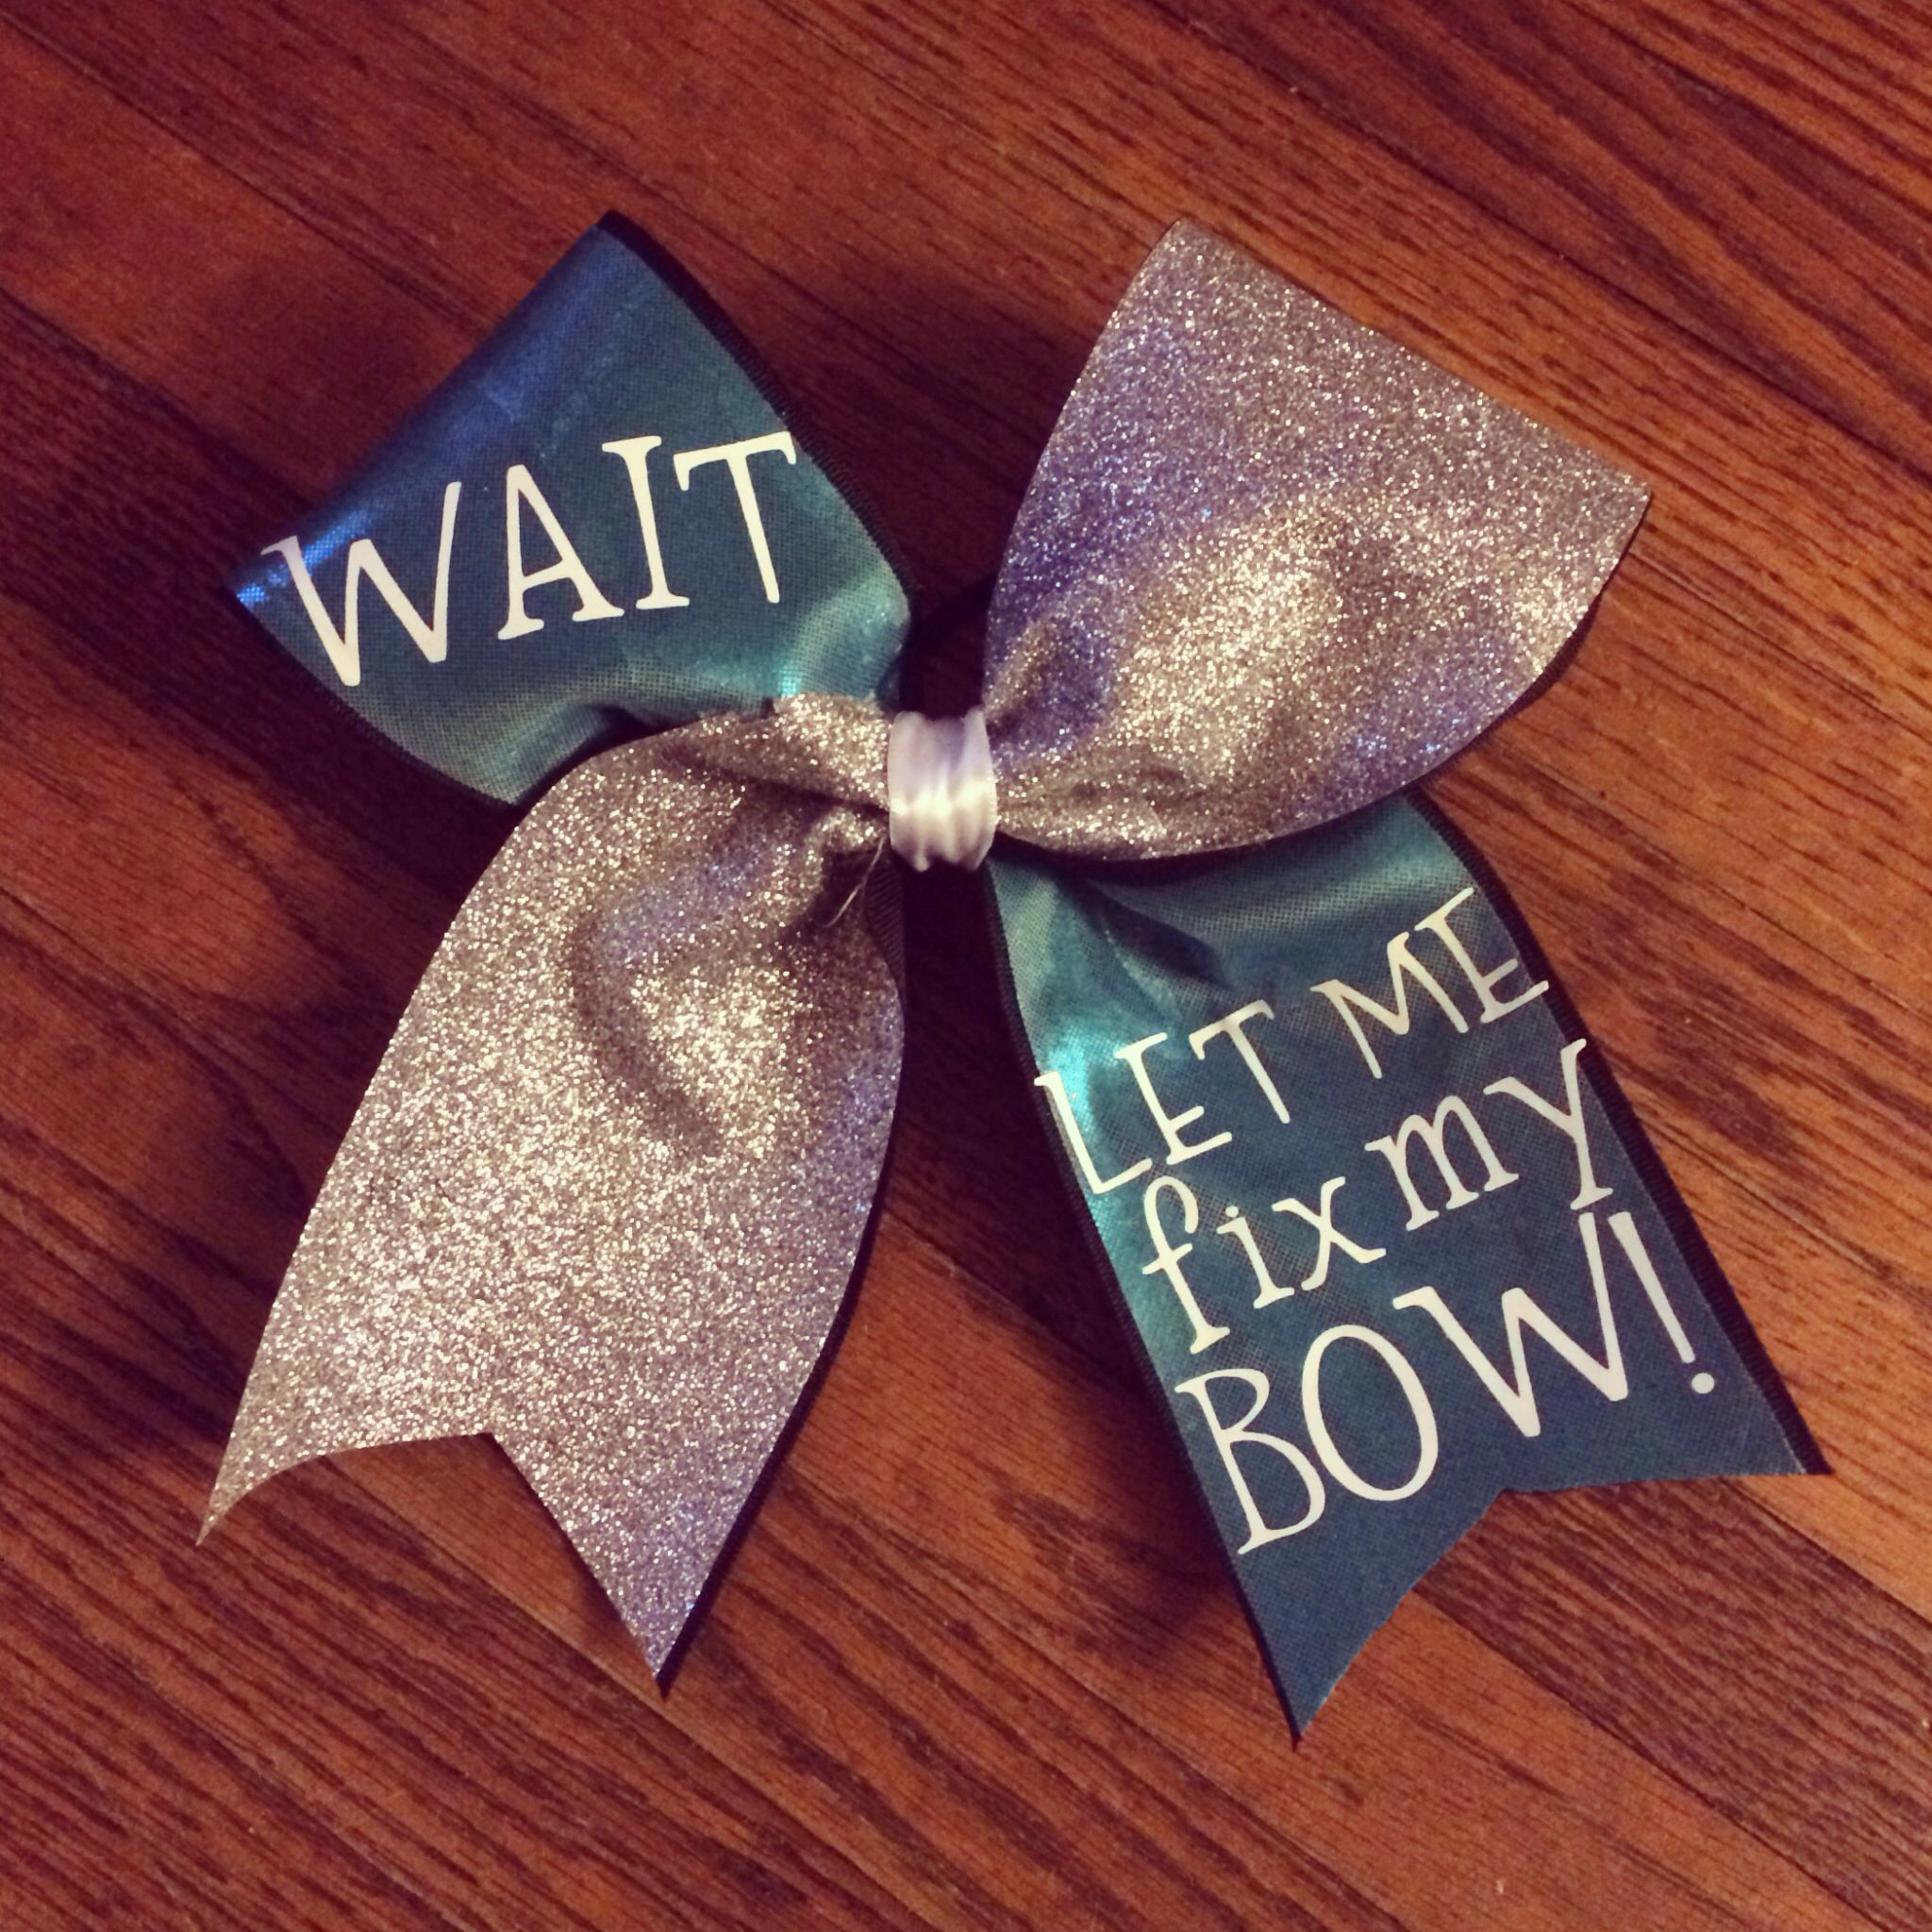 Cheer hair bow. Cheermombow@gmail.com to order | Cheer ...